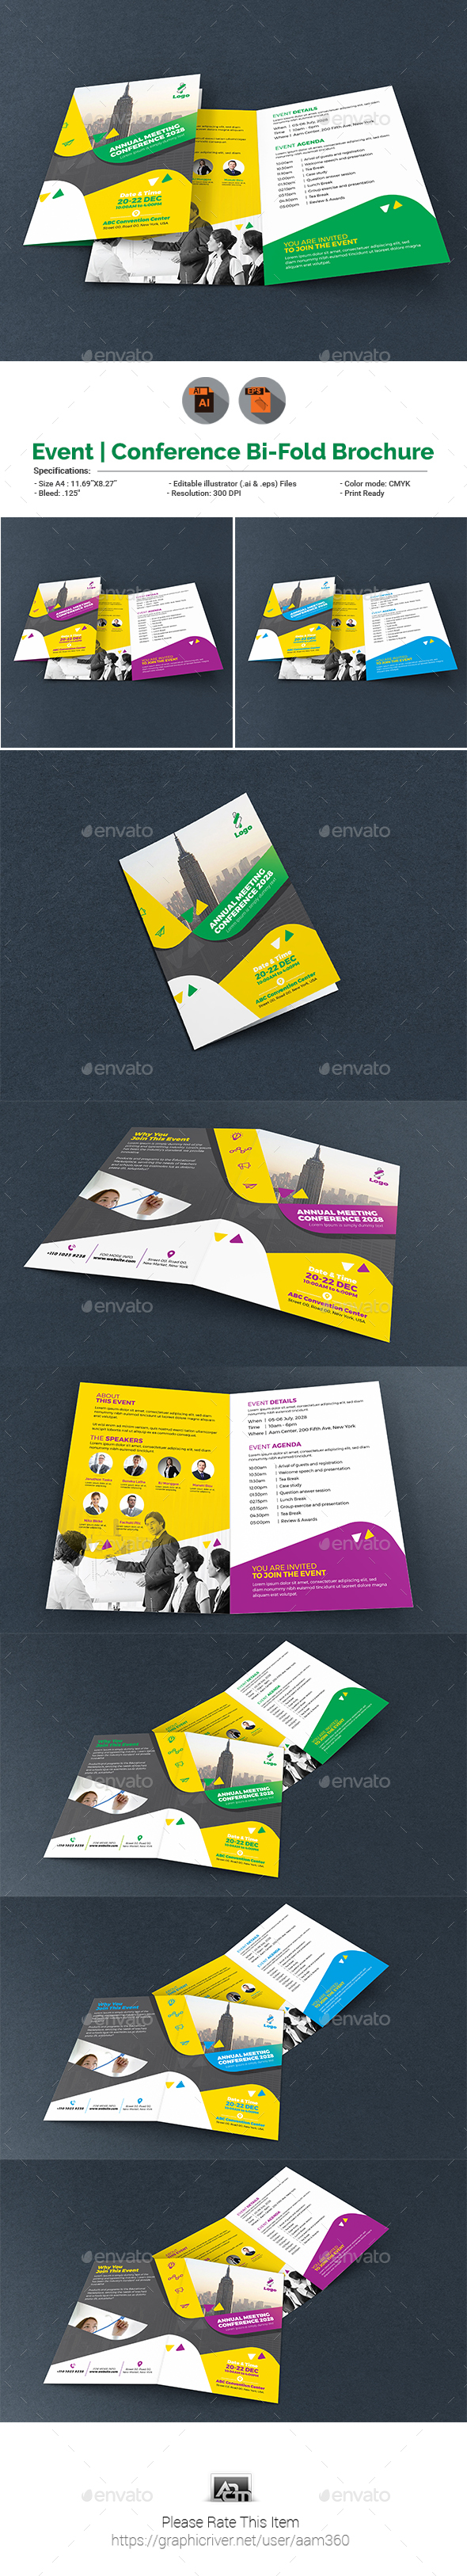 Event/Summit/Conference Bifold Brochure - Brochures Print Templates